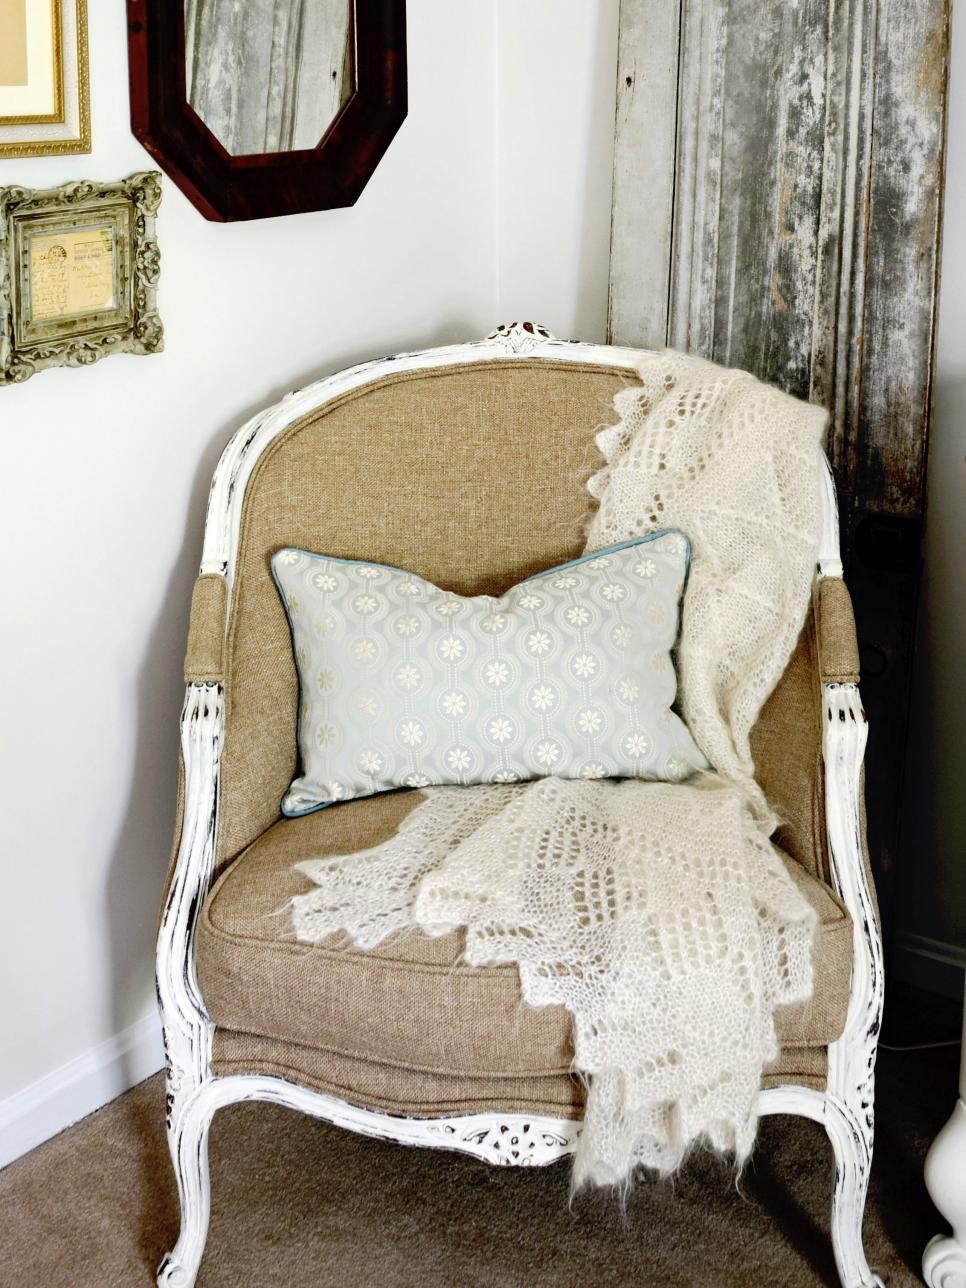 Unique nursery finds: vintage chair